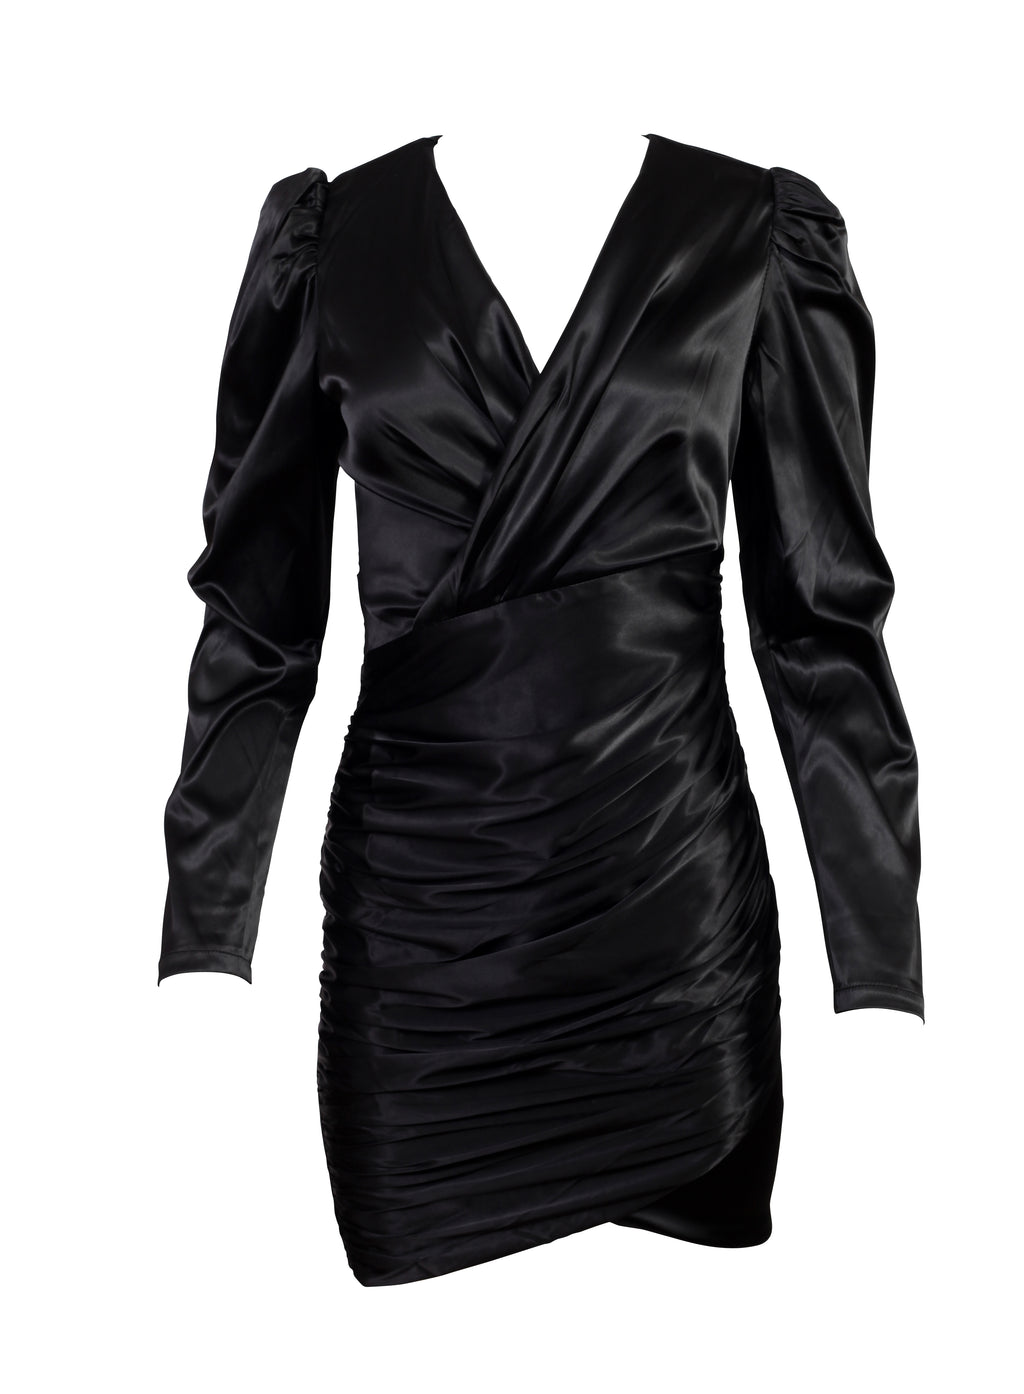 Front view of a v neck long sleeved wrap up dress in black